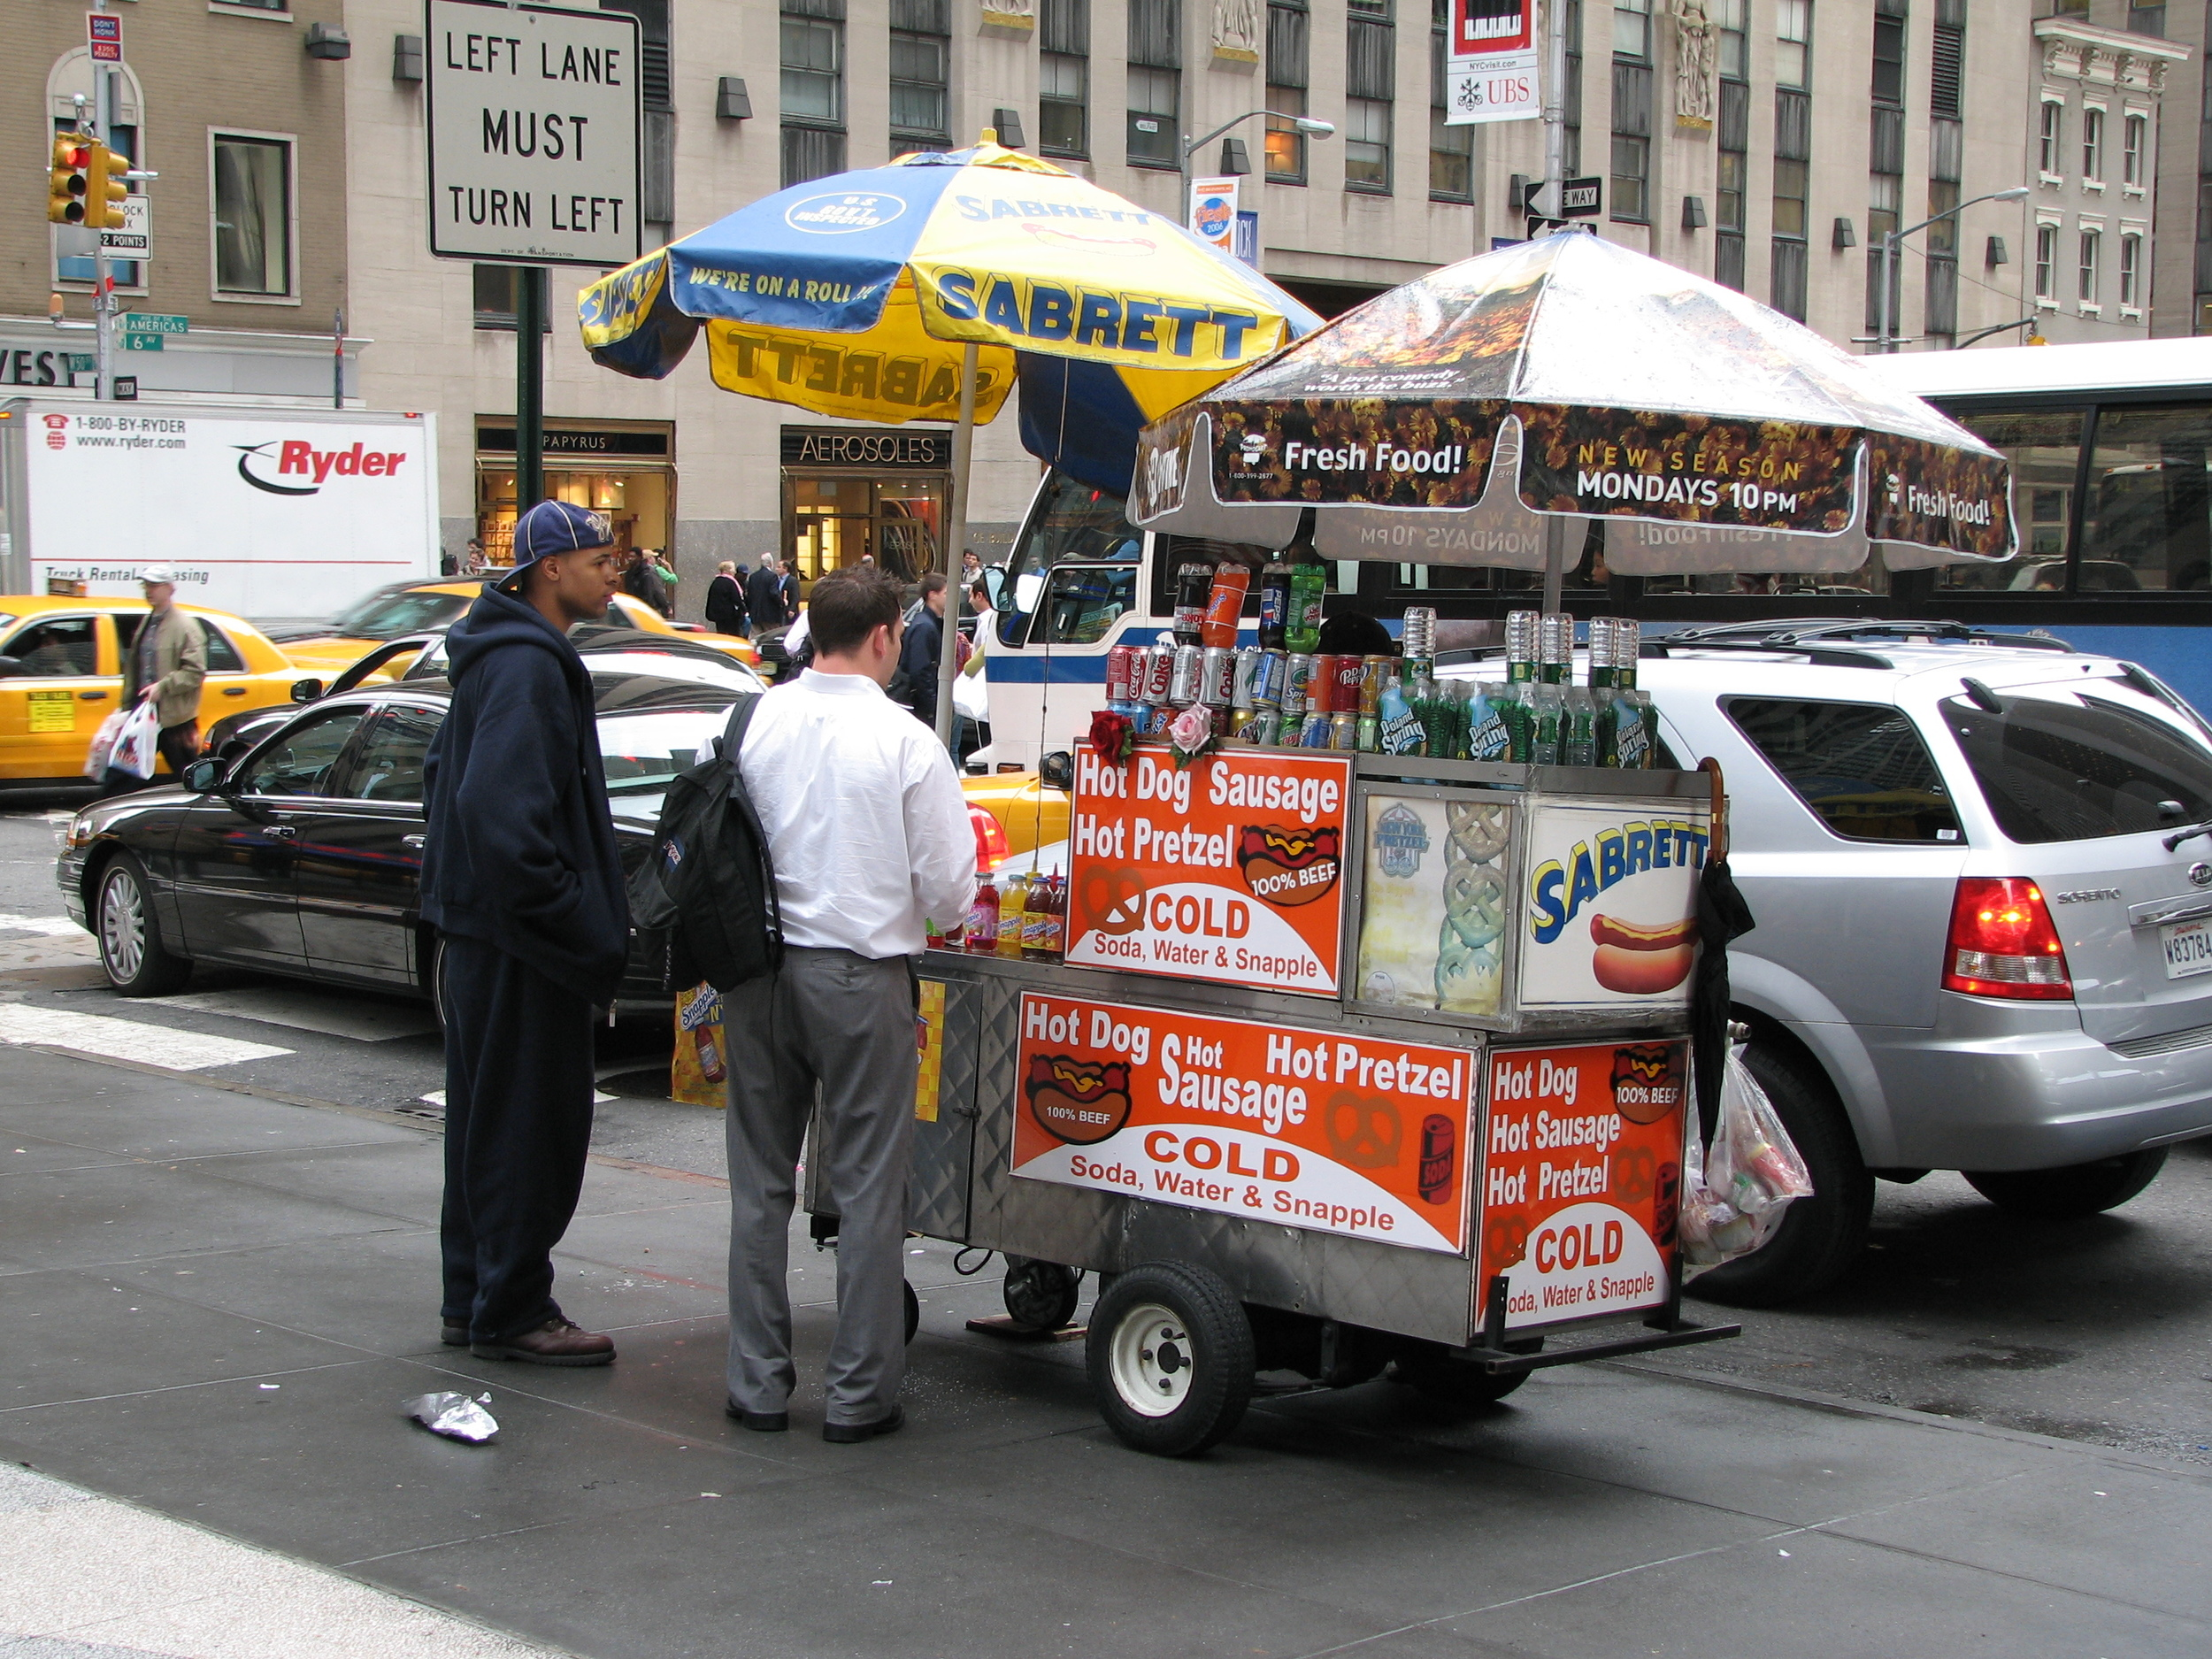 A food cart in New York City.